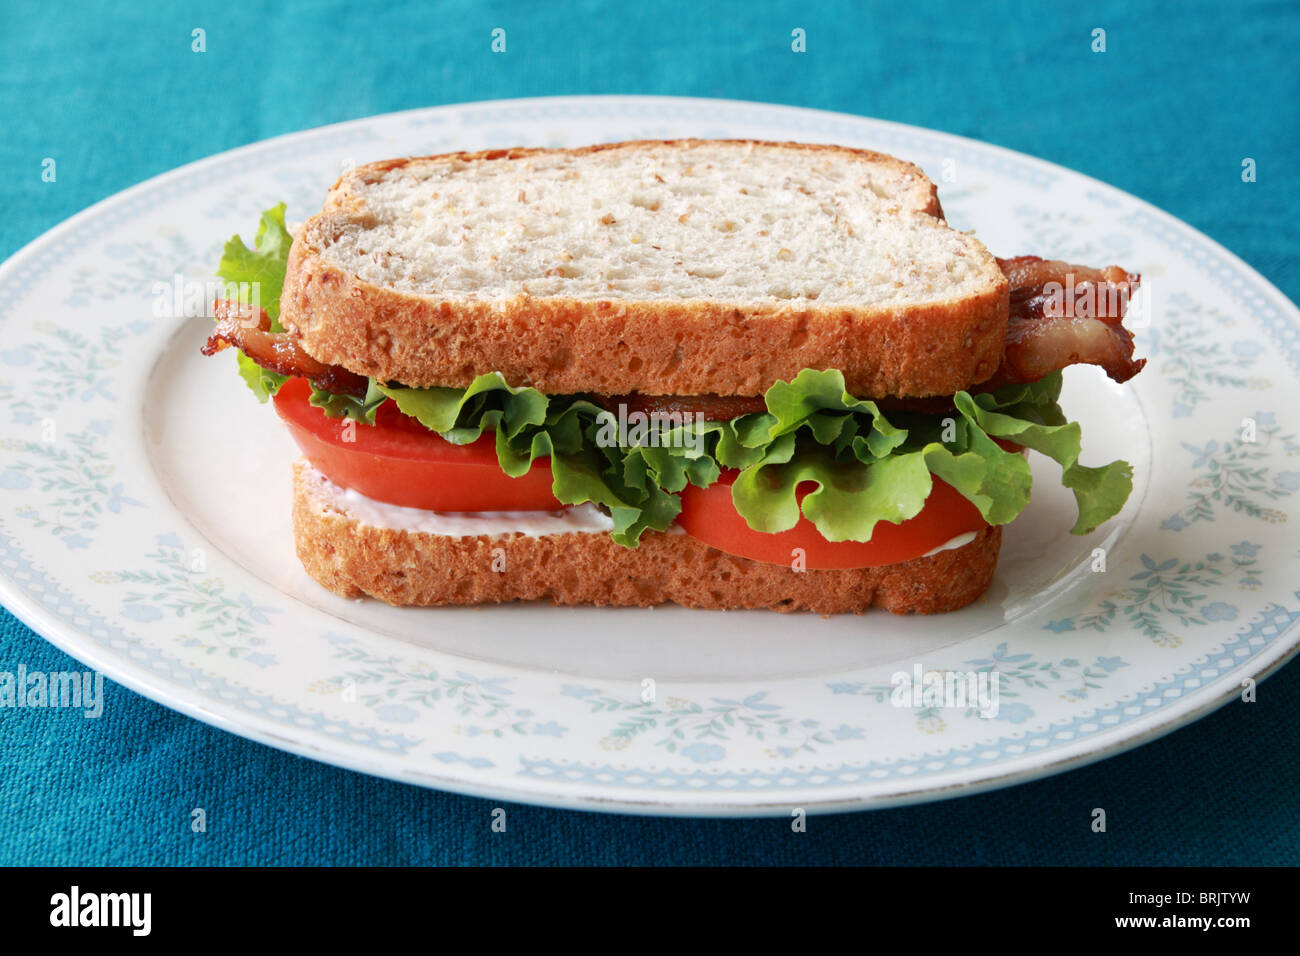 BLT or bacon lettuce and tomato sandwich on a plate - Stock Image